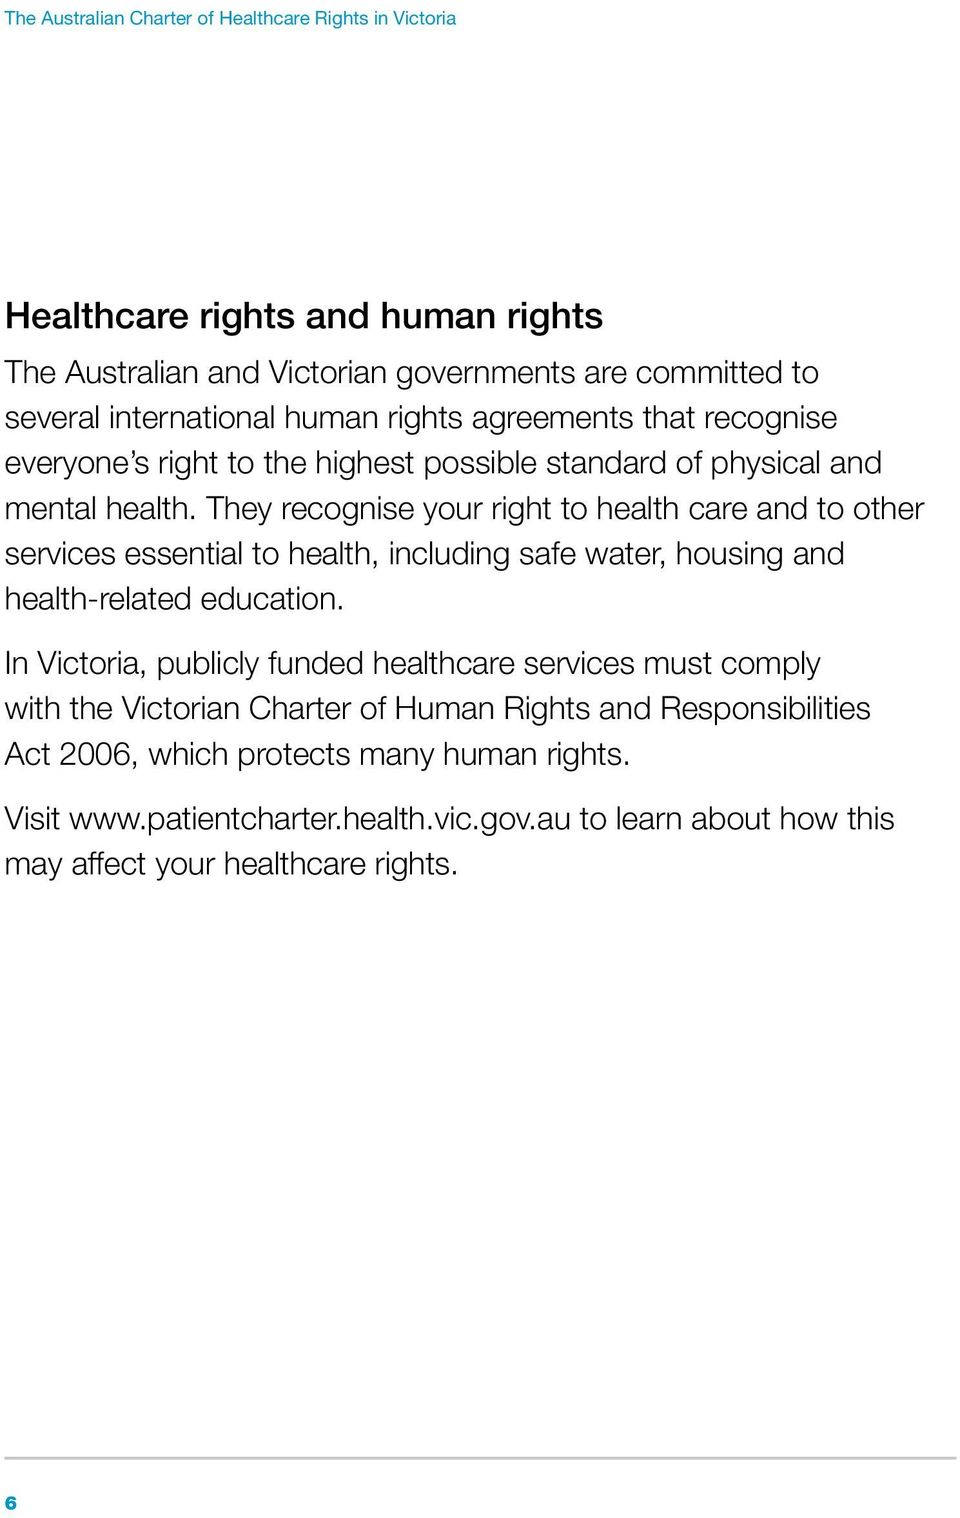 They recognise your right to health care and to other services essential to health, including safe water, housing and health-related education.